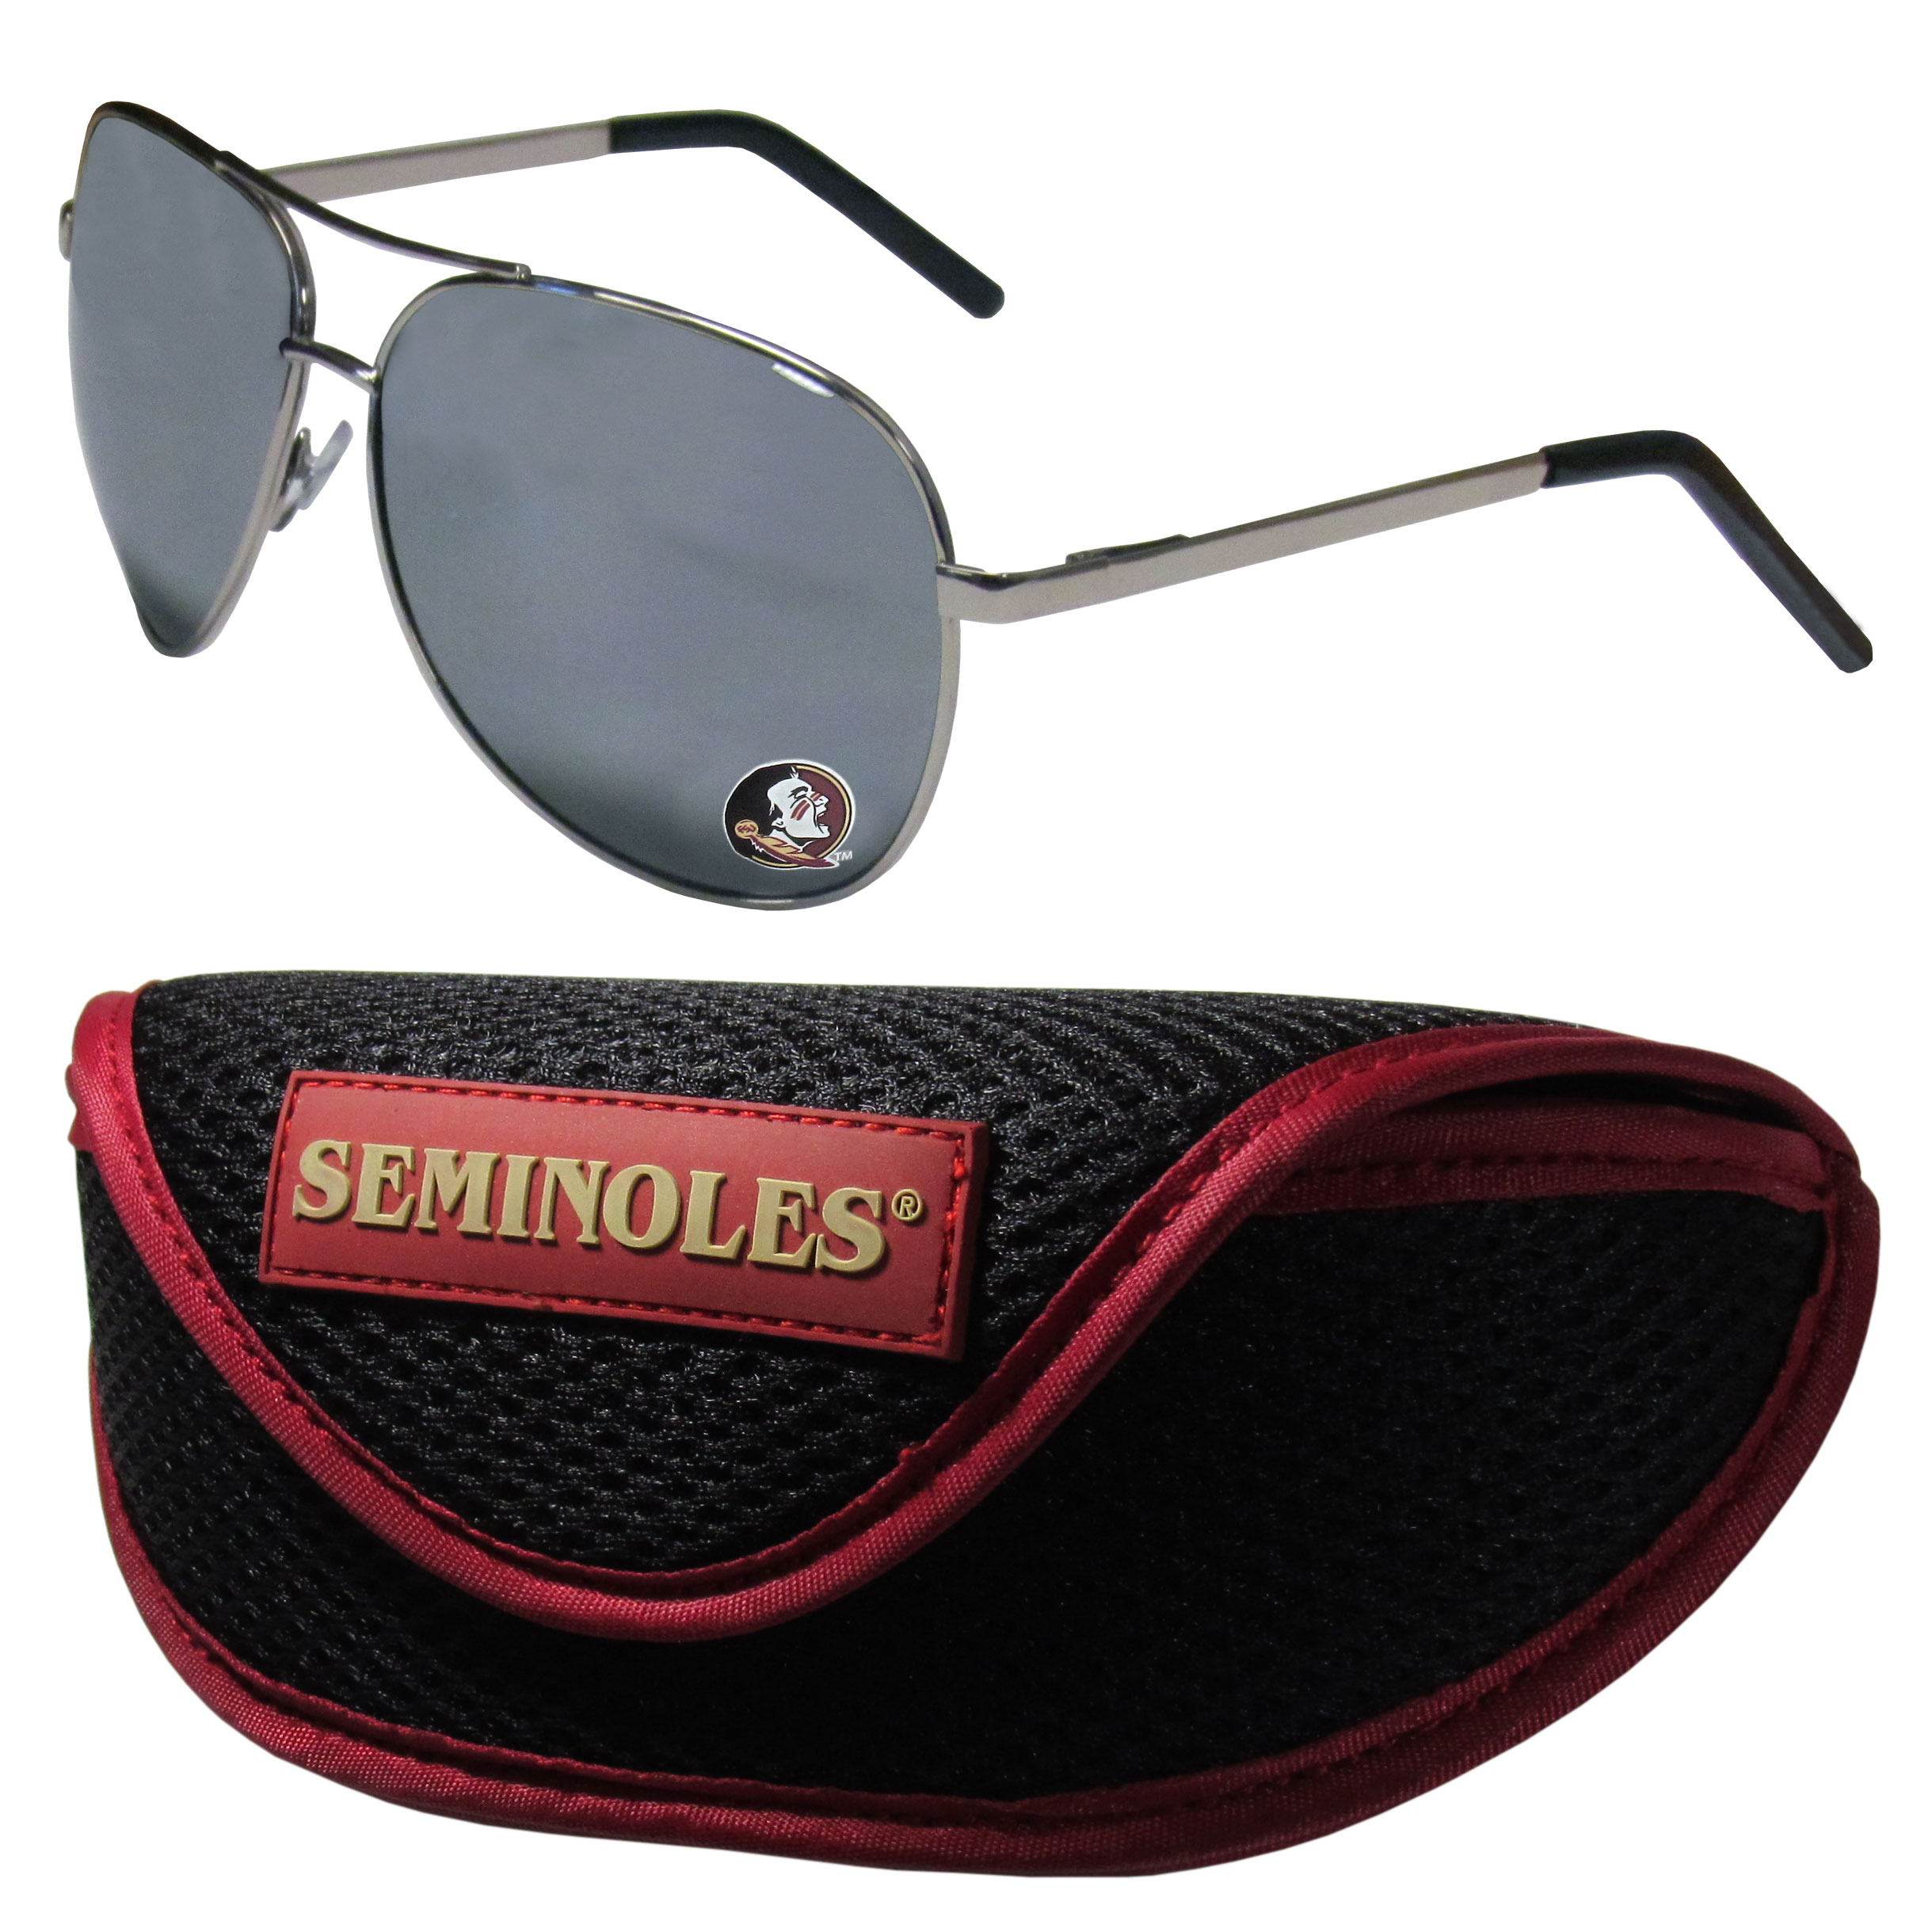 Florida St. Seminoles Aviator Sunglasses and Sports Case - Aviator sunglasses are truly an iconic retro fashion statement that never goes out-of-style. Our Florida St. Seminoles  aviator sunglasses pair this classic look with your love of the game. The iridium coated lenses reduce glare while driving, boating, golfing and their 100% UVA/UVB rating provides you with the maximum UV protection for all your outdoor activities. A millennial favorite, these affordable designer frames are the perfect eyewear accessory for a sports fan that is looking for high-quality at an affordable price. The durable, flex hinged frames are tough enough for hiking and camping or if you prefer sun bathing by the pool or on the beach these shades will really stand the test of time. The sunglasses come with a sporty case which has a large team logo on the lid that will make even the most die-hard fan proud!